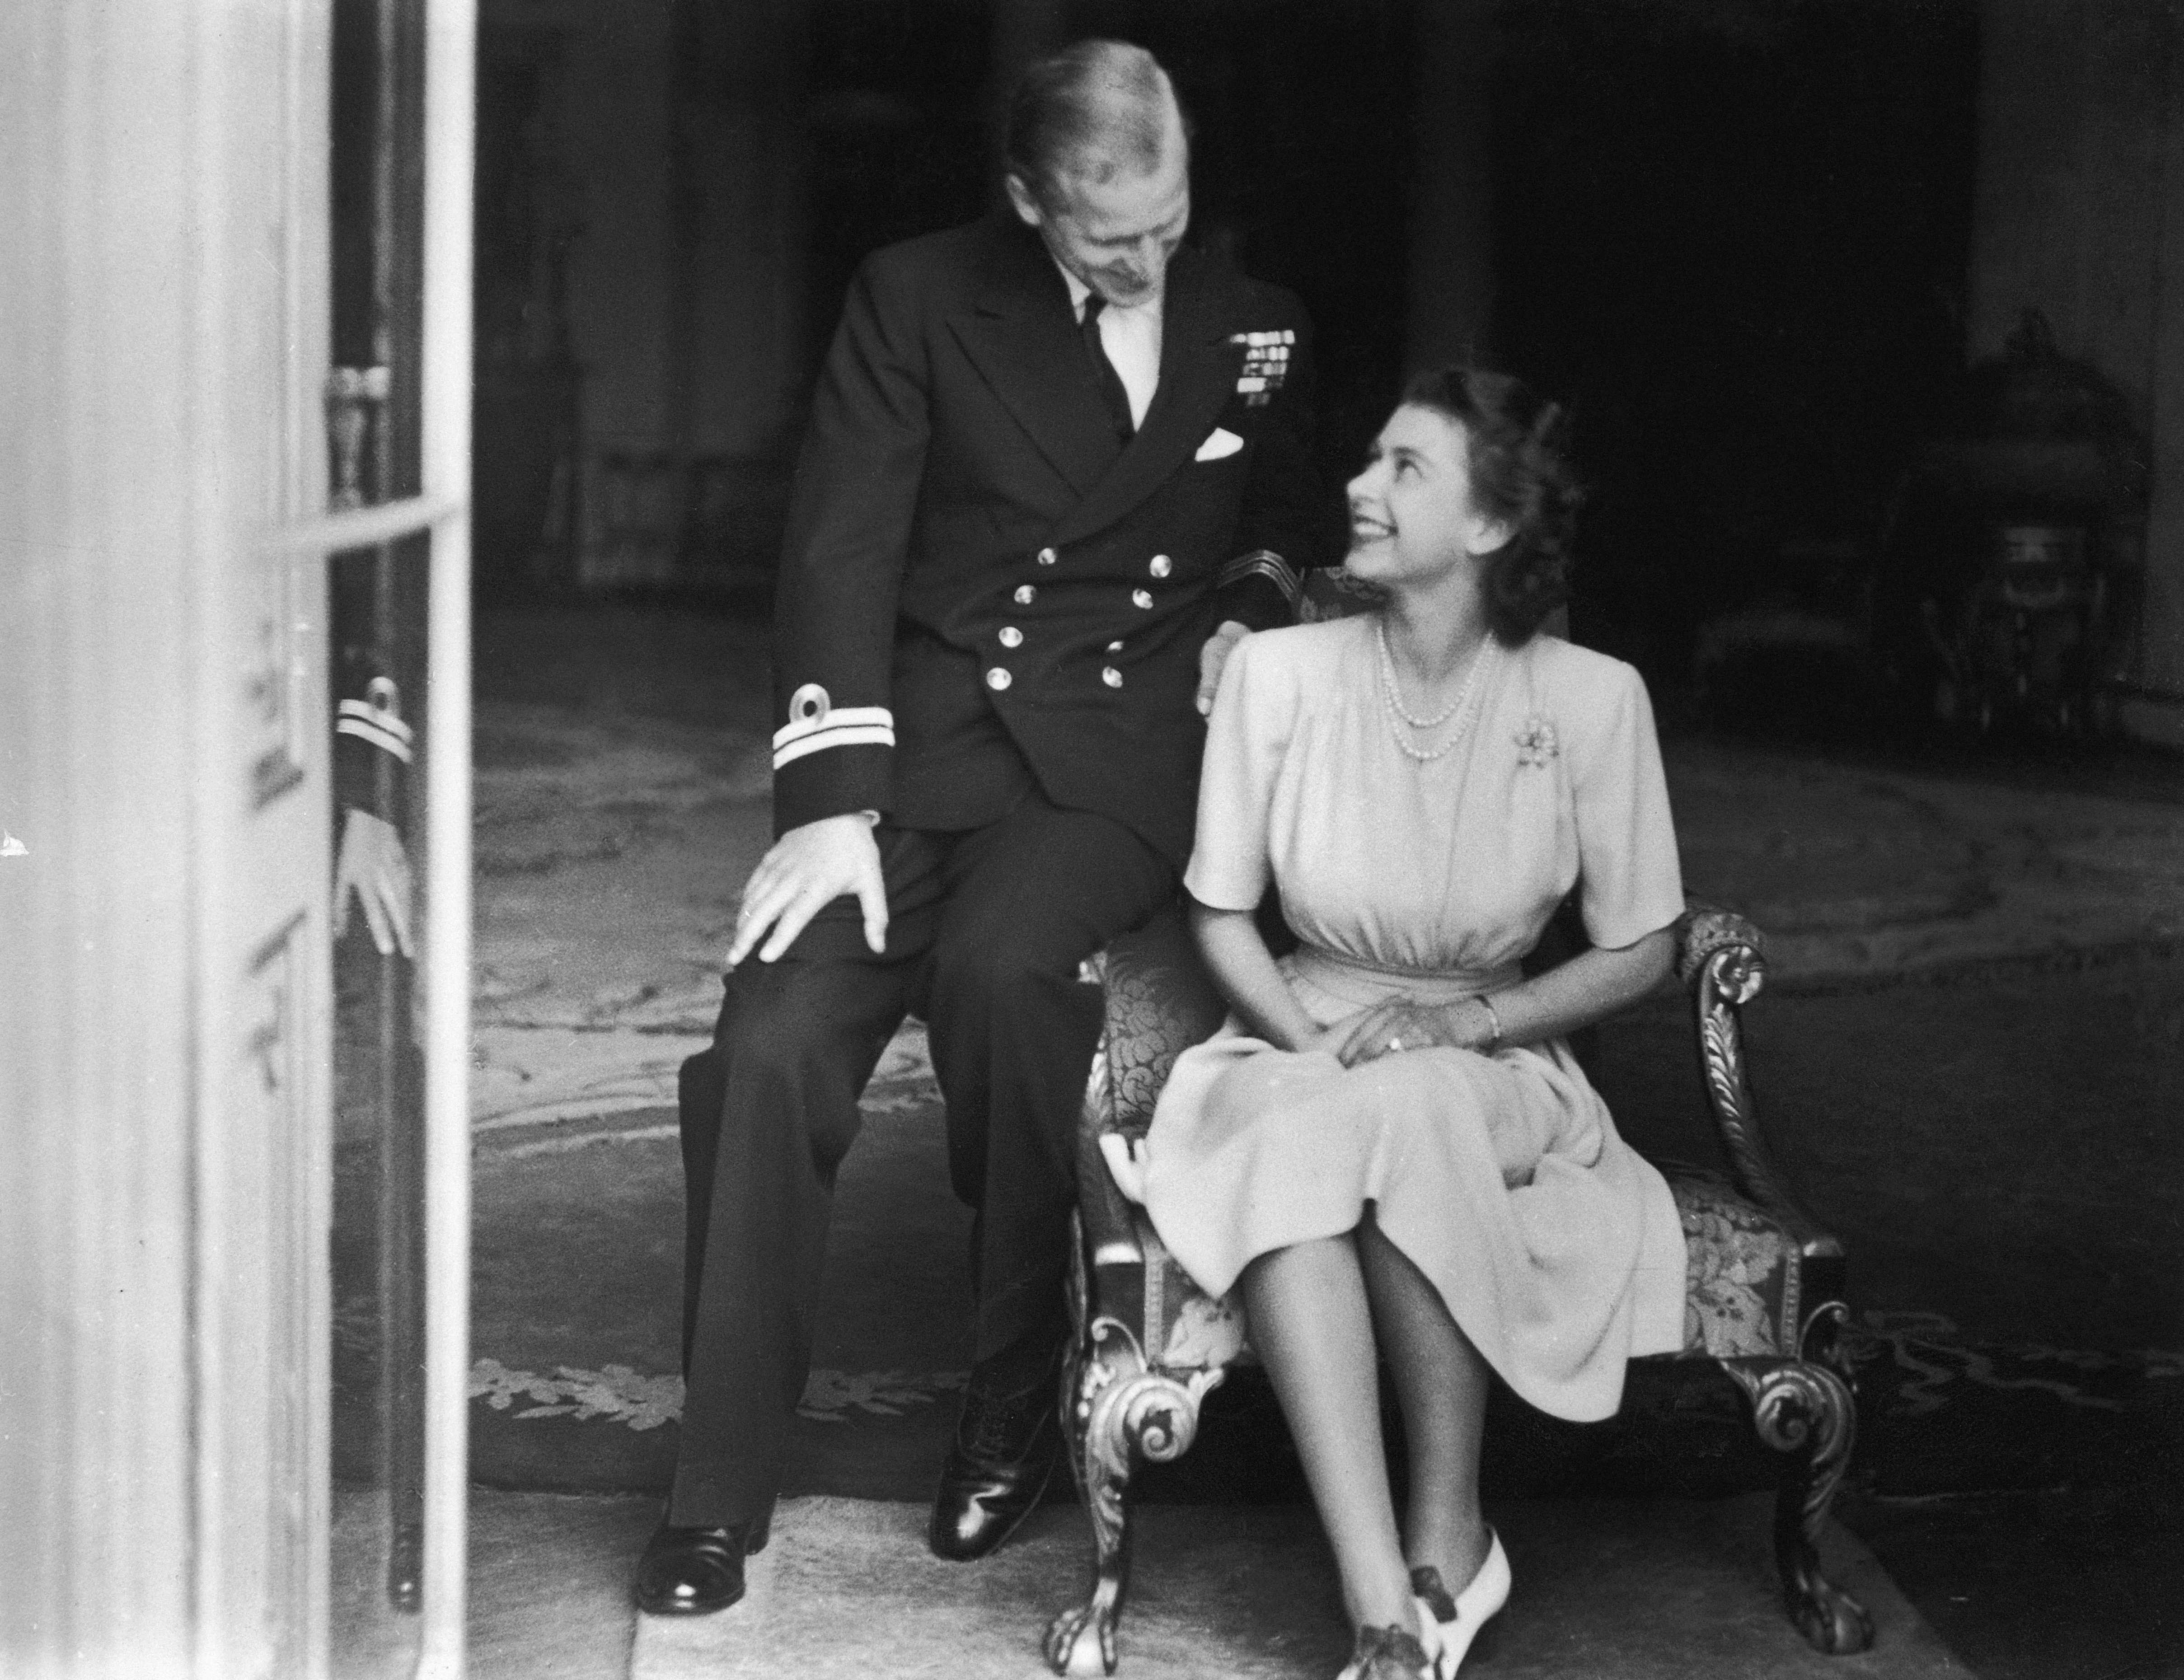 Princess Elizabeth (later Queen Elizabeth II) and her fiance, Philip Mountbatten at Buckingham Palace, after their engagement was announced, 10th July 1947. (Photo by Topical Press Agency/Hulton Archive/Getty Images)